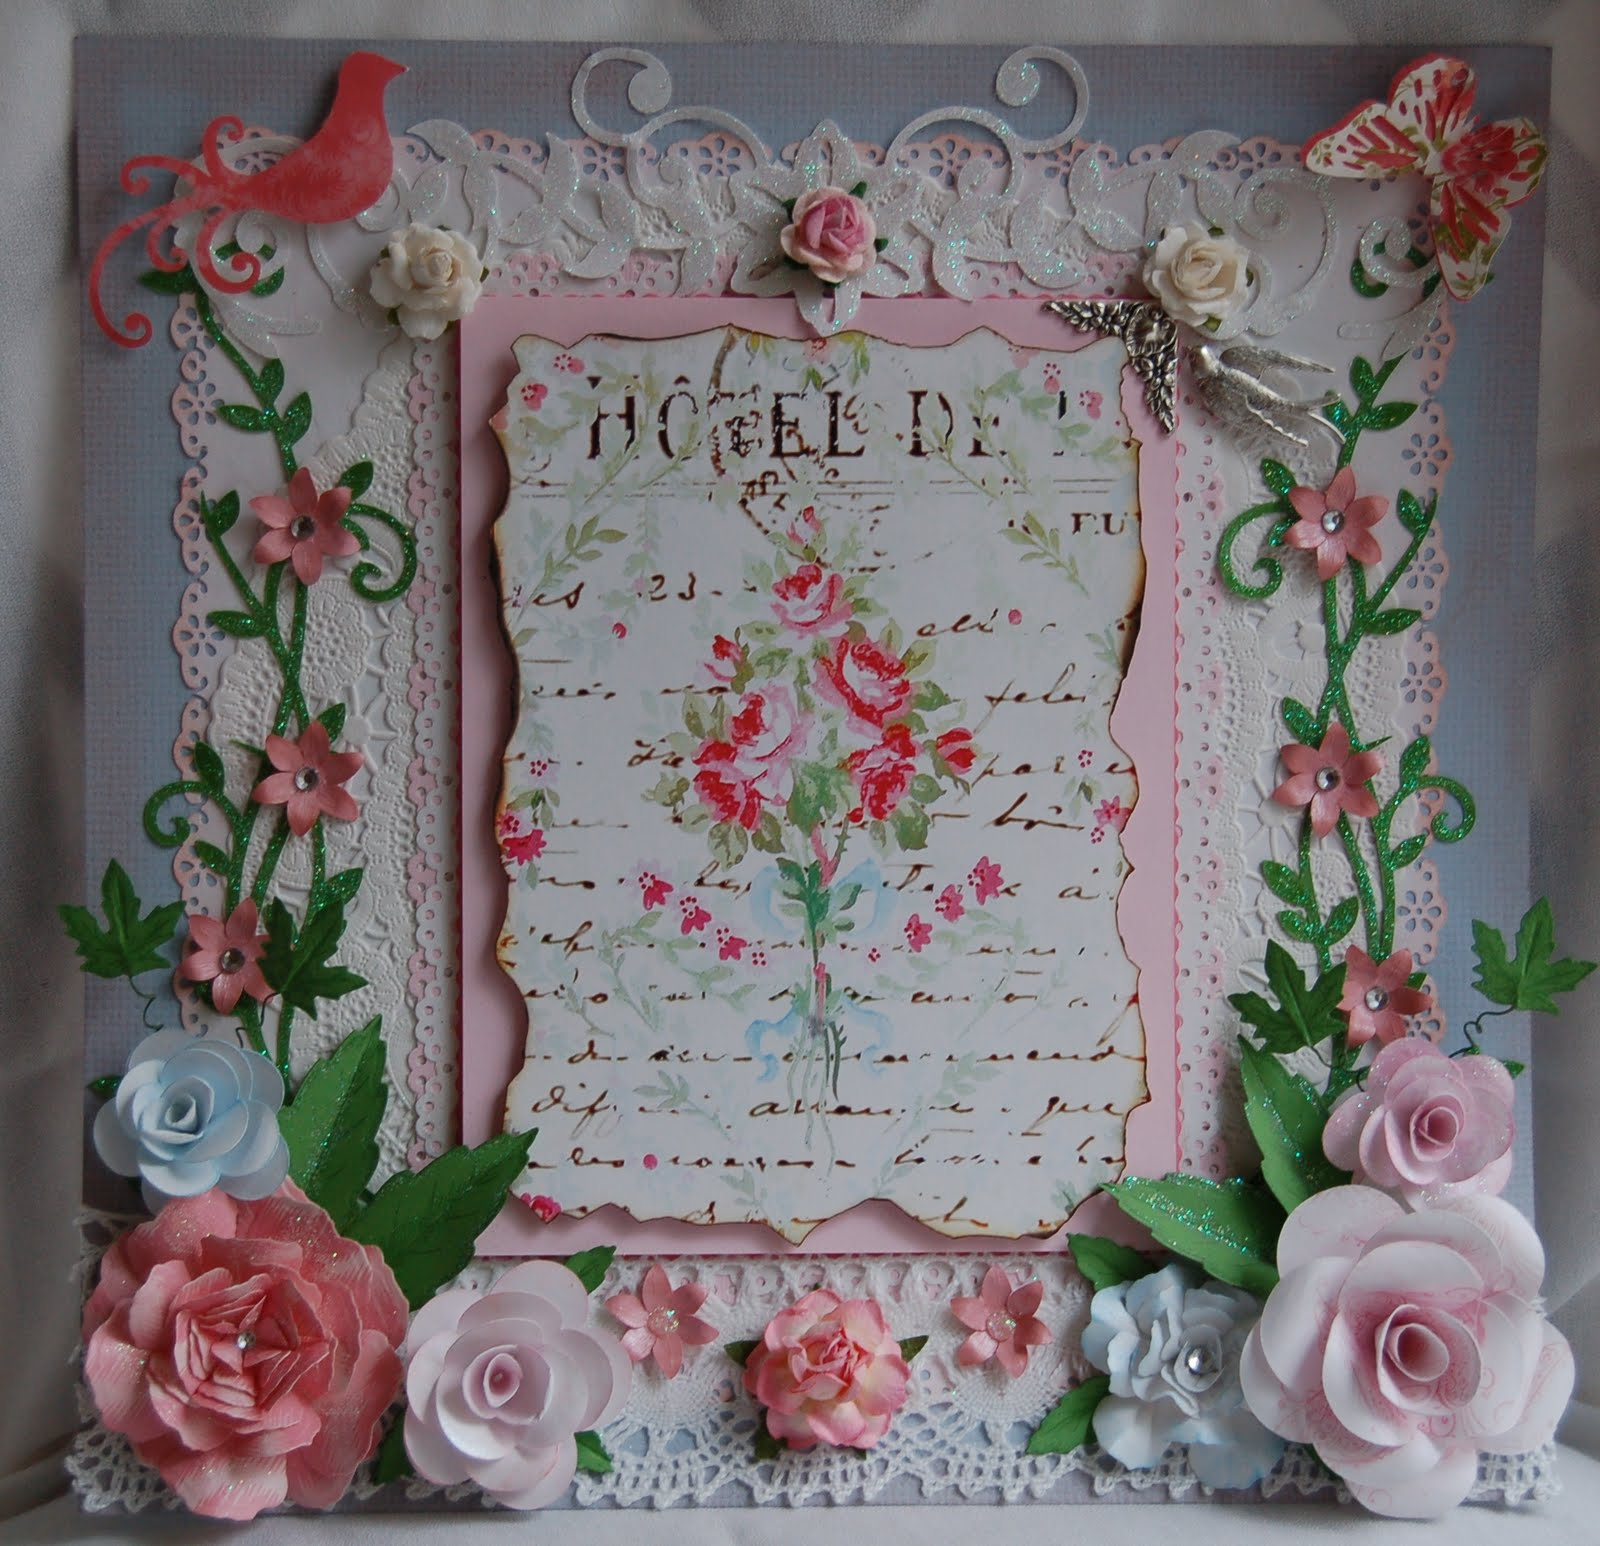 Treasured Paper Art: Shabby Chic Scrapbook Layout